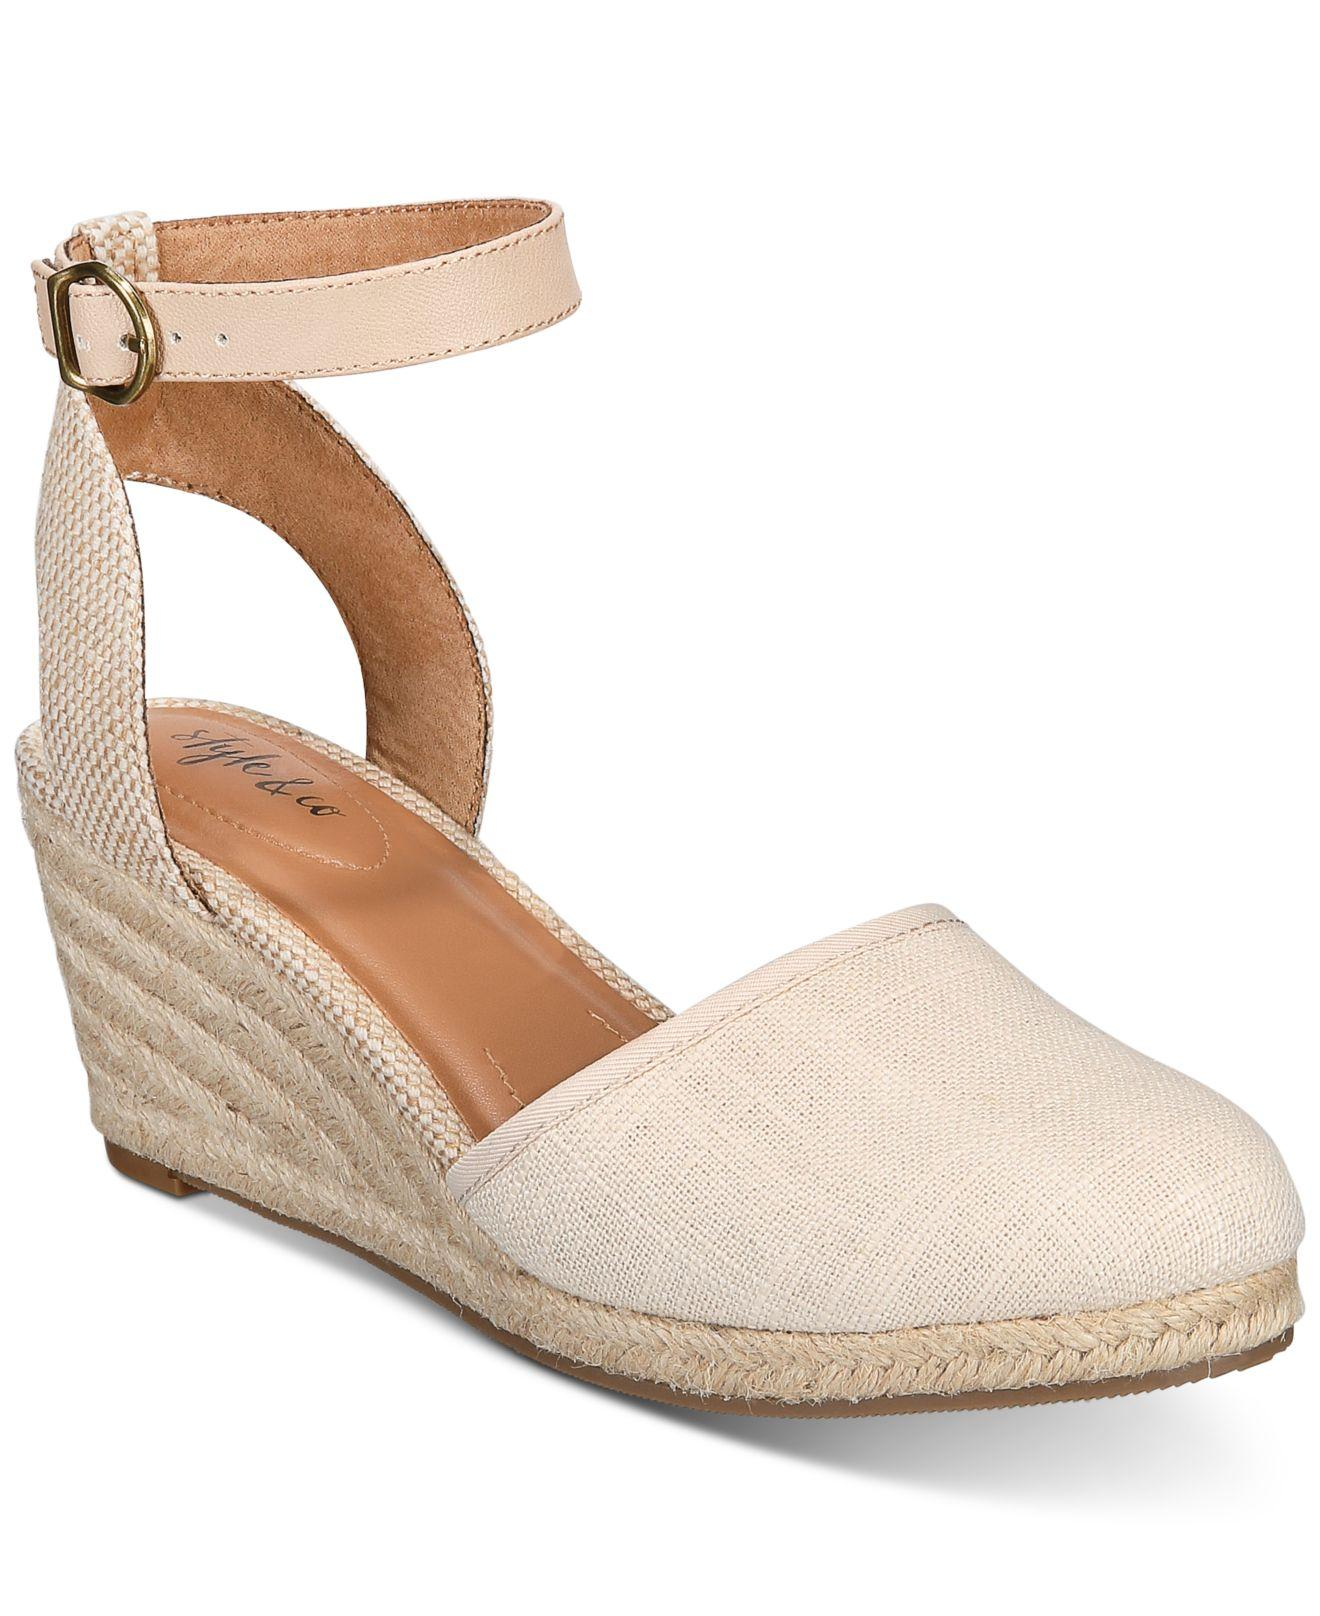 2968b84bd39 Style & Co. Natural Mailena Wedge Espadrille Sandals, Created For Macy's